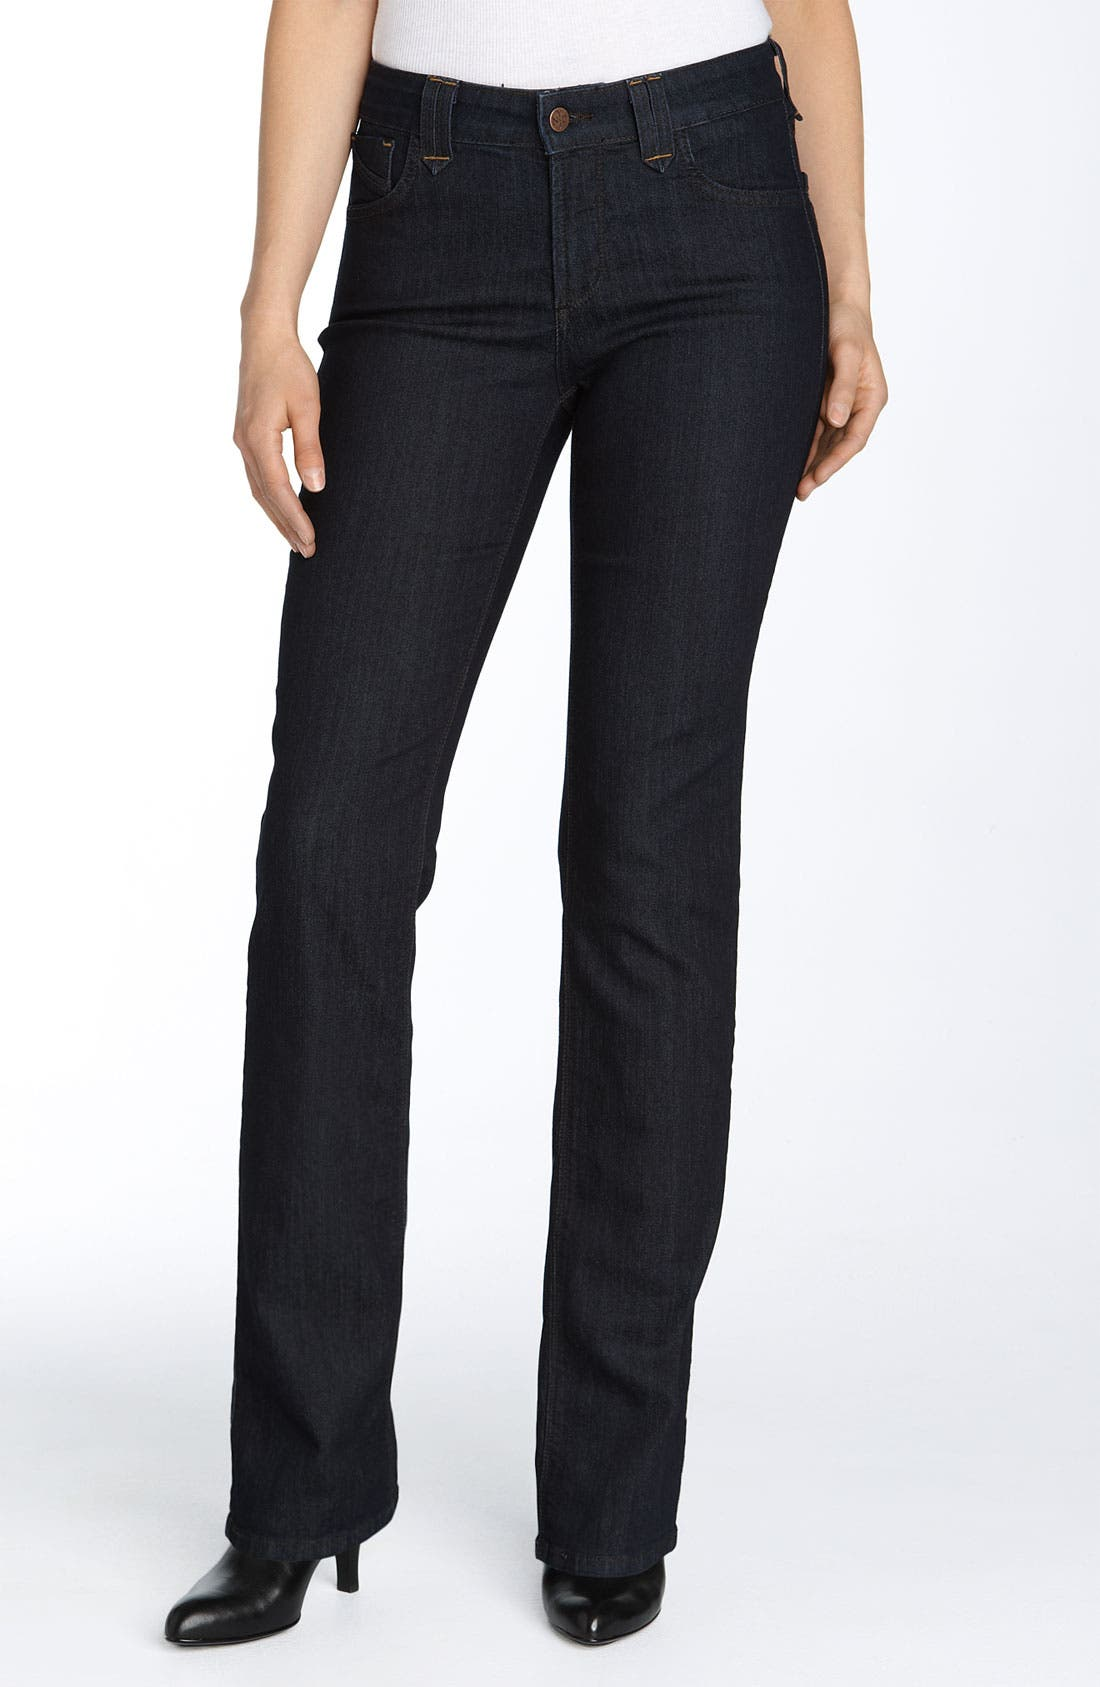 Alternate Image 1 Selected - NYDJ Marilyn Stretch Straight Leg Jeans (Resin)